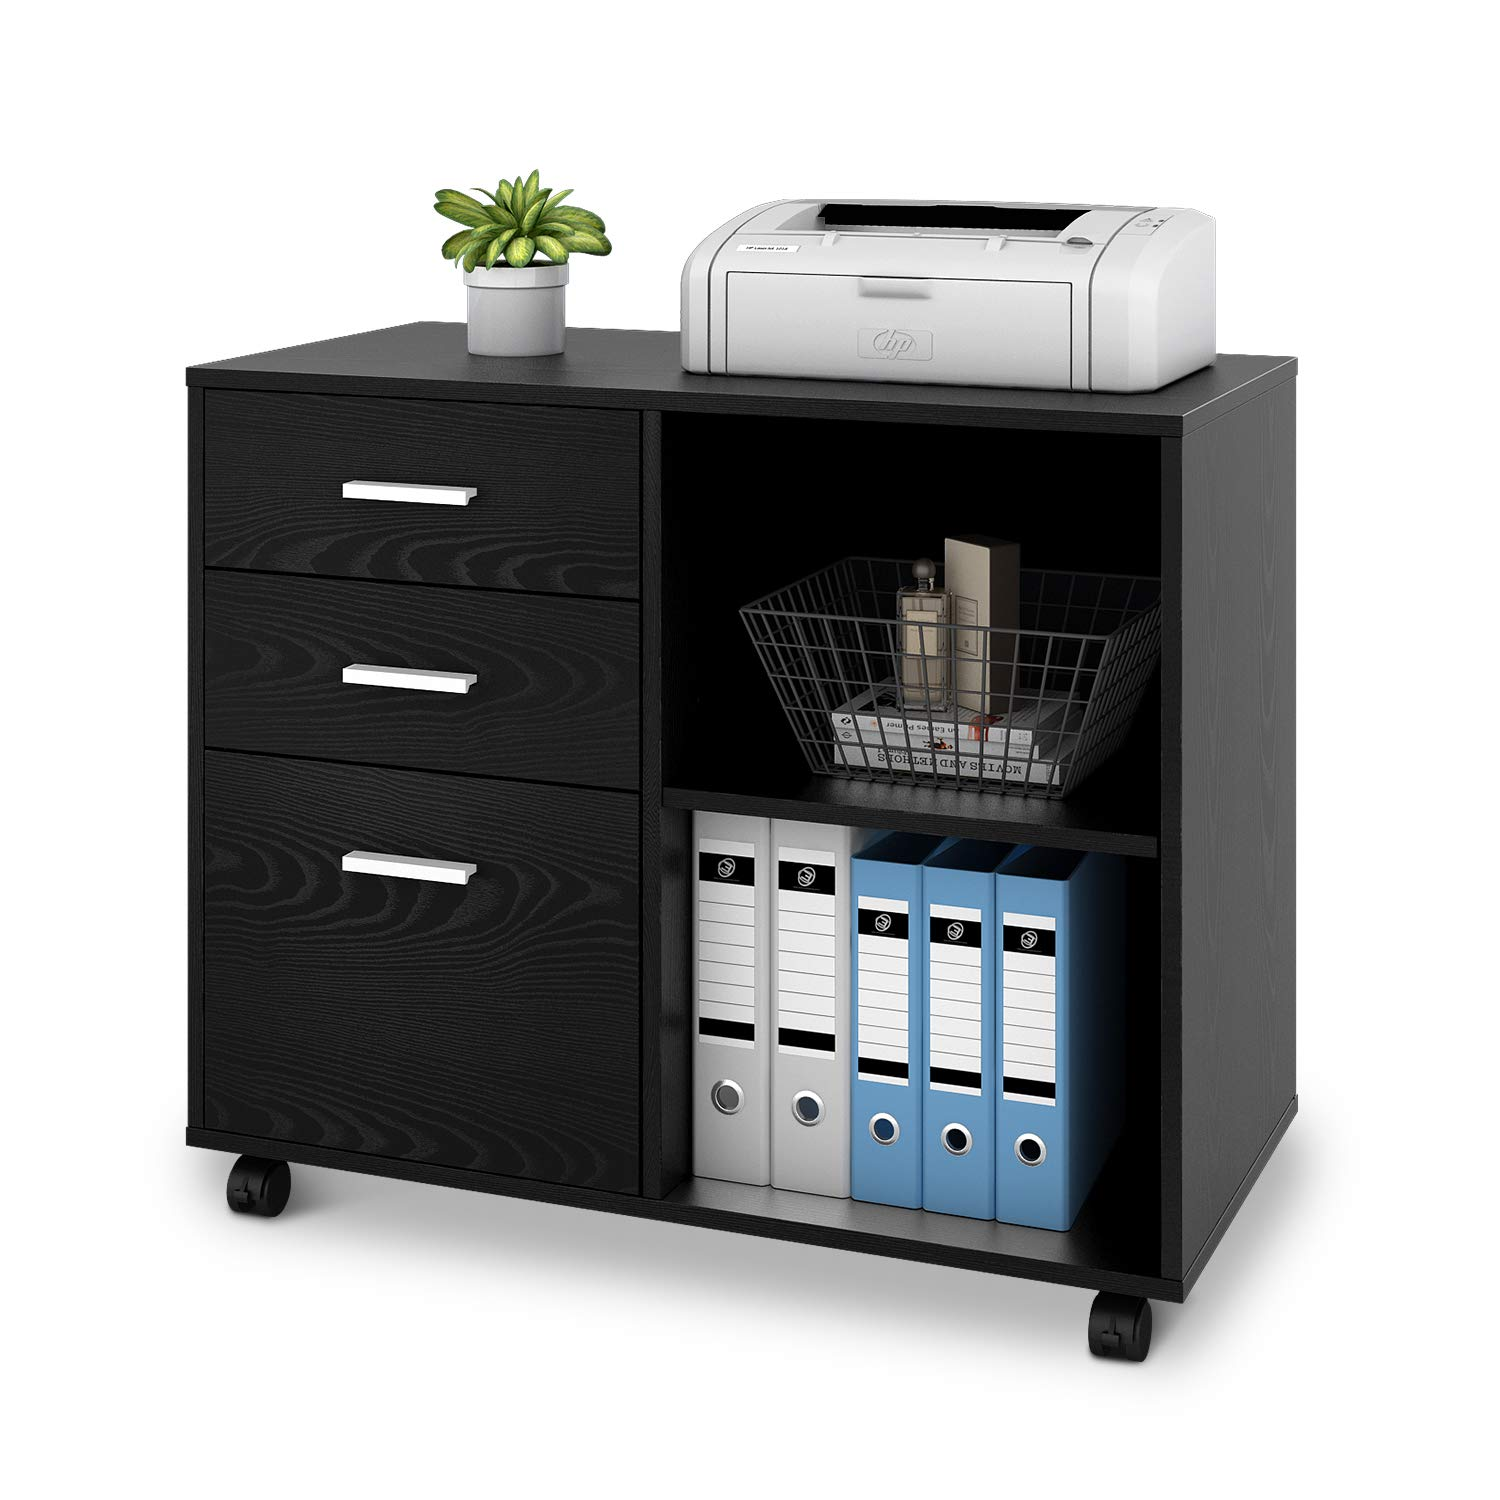 DEVAISE 3 Drawer Lateral File Cabinet,Modern Wood Printer Stand with Wheels, Open Storage Shelves for Home Office (Black with Shelf)